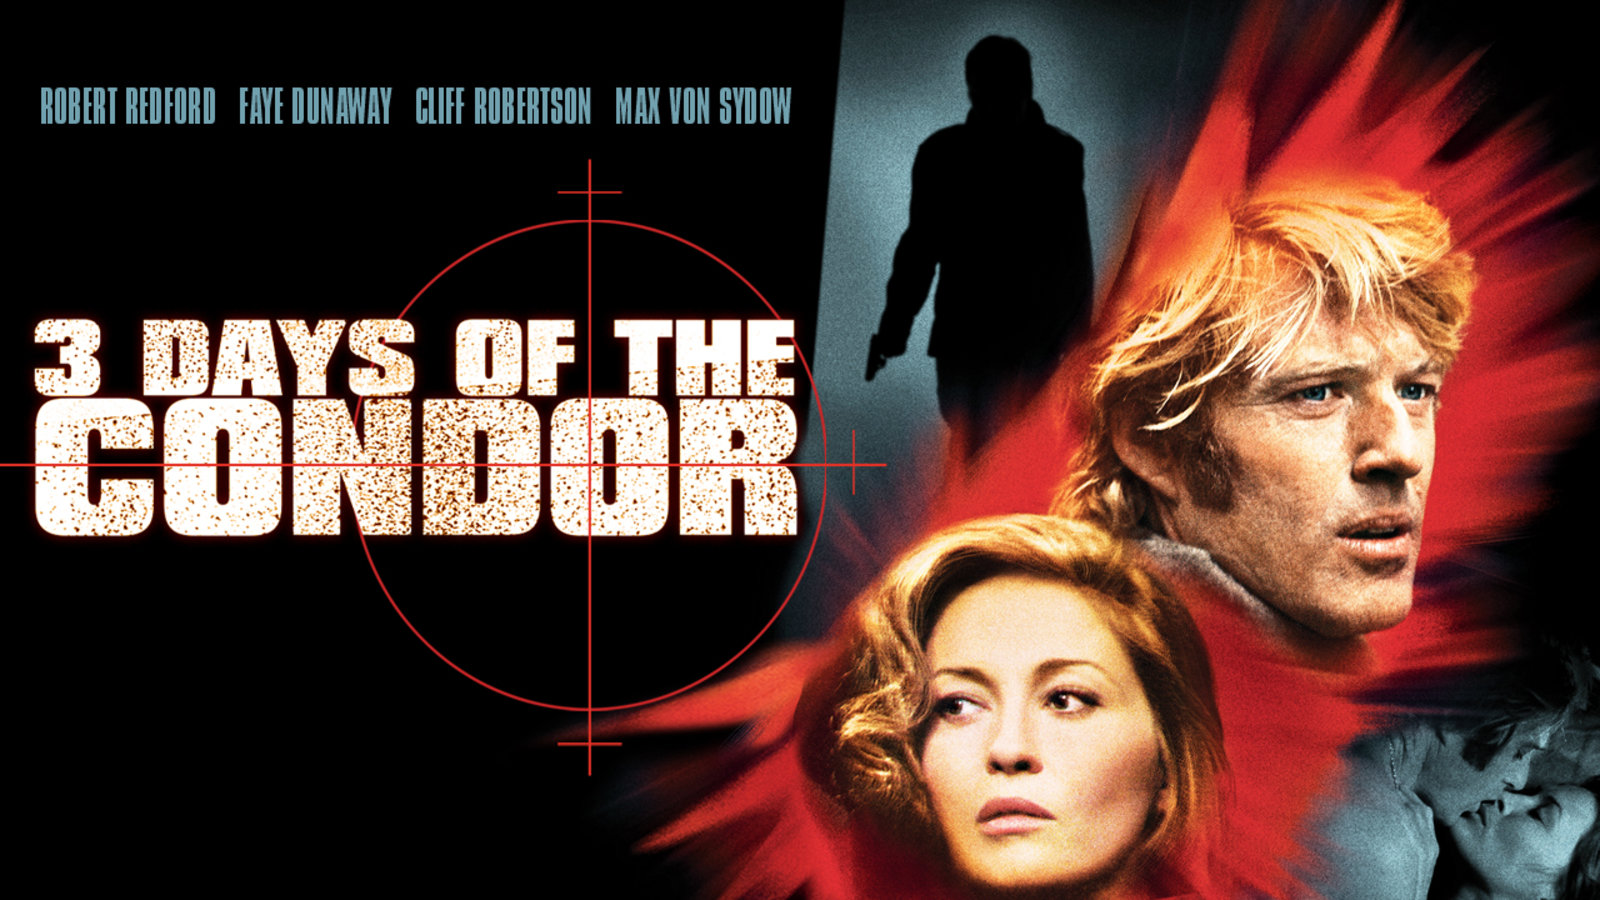 Three Days of the Condor